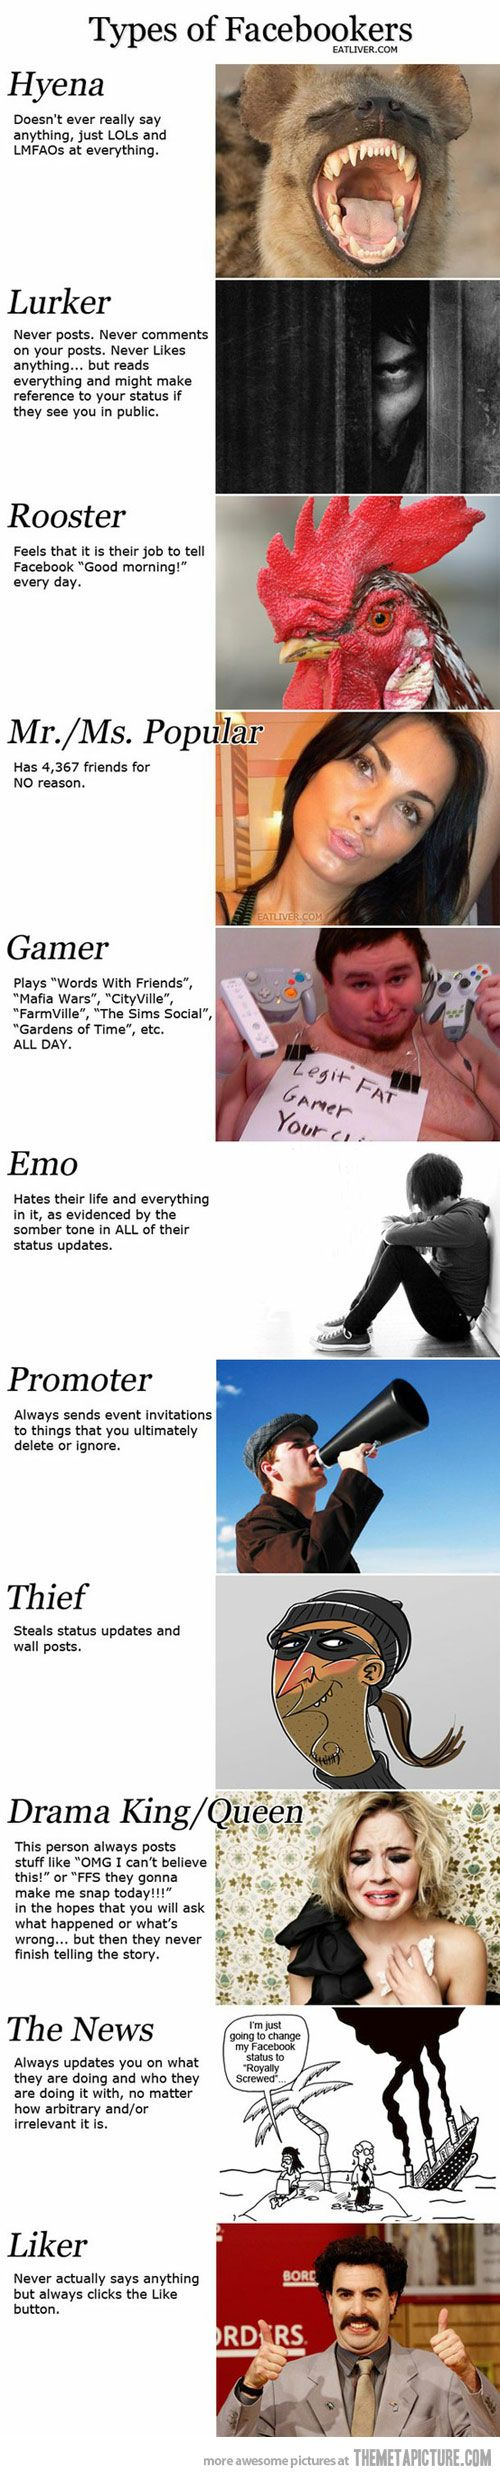 Types of Facebook Users